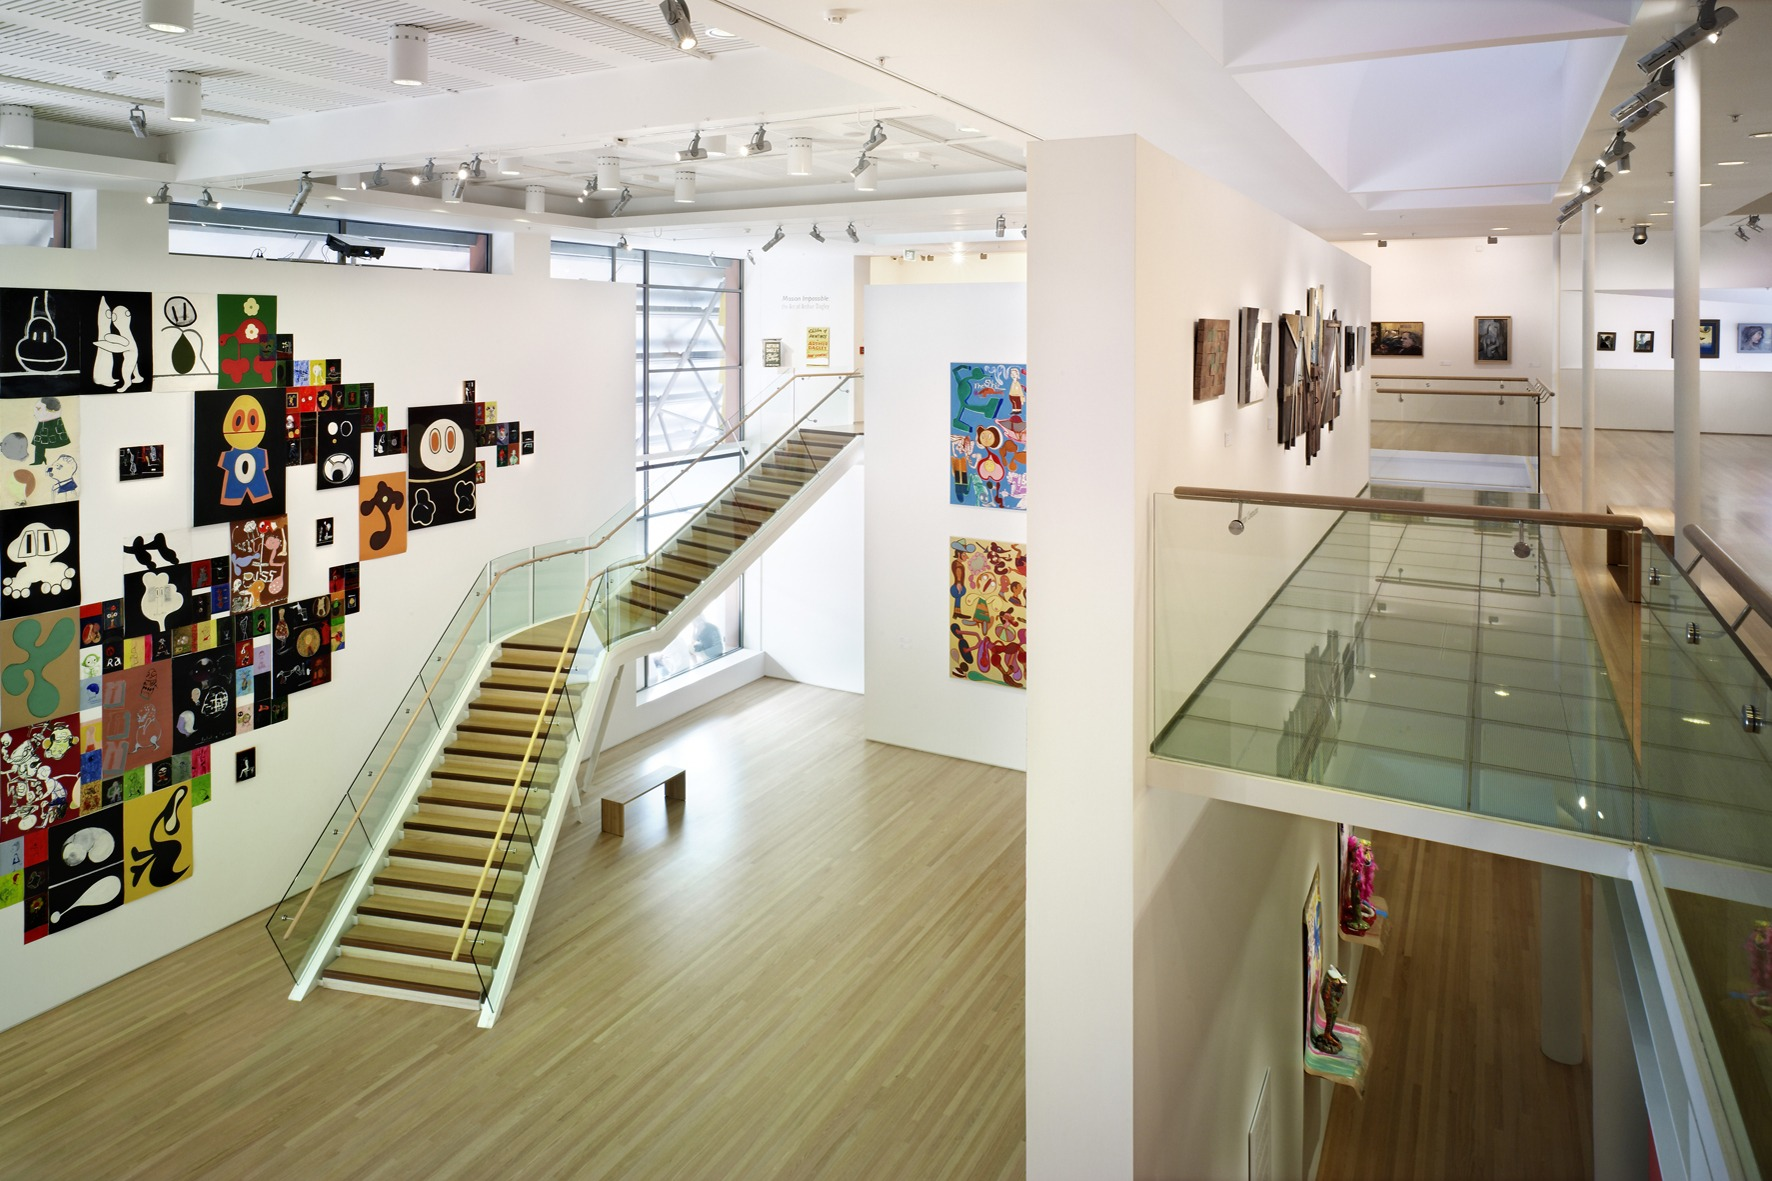 Tauranga Art Gallery Stairs & Handrails by Top Flyte Systems